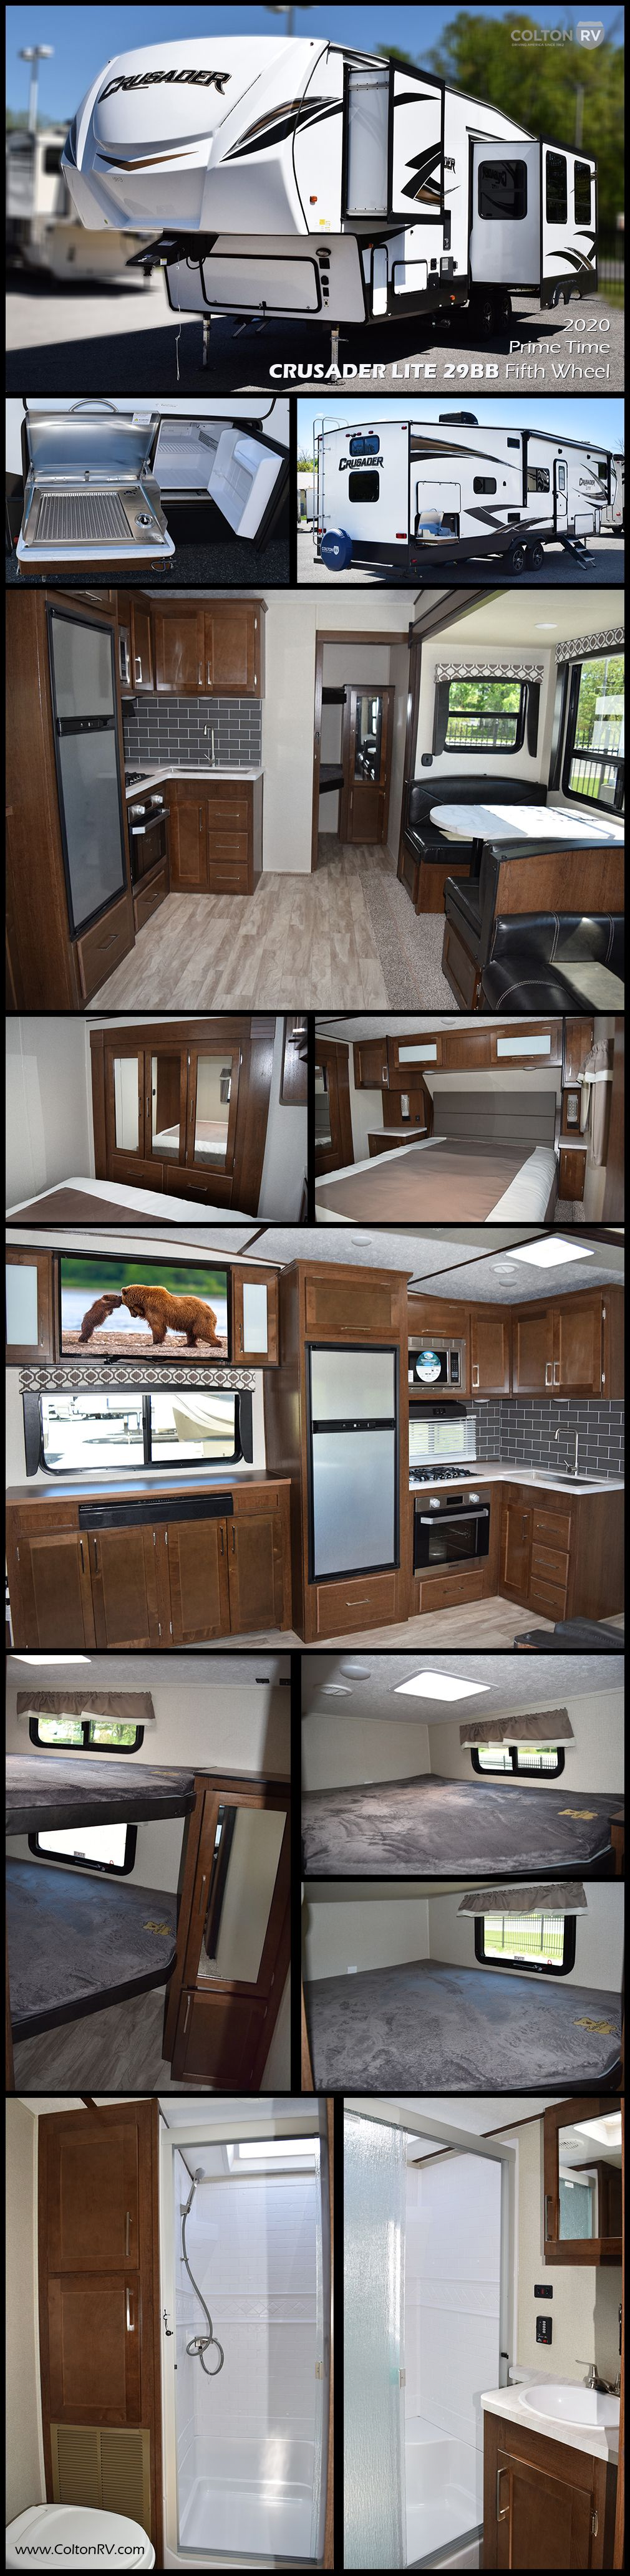 Inventory Colton Rv In Ny Buffalo Rochester And Syracuse Ny Rv Dealer Fifth Wheel Campers And Class A Motorhomes For Sale In Ny Outdoor Rooms Outdoor Kitchen Eat In Kitchen Table